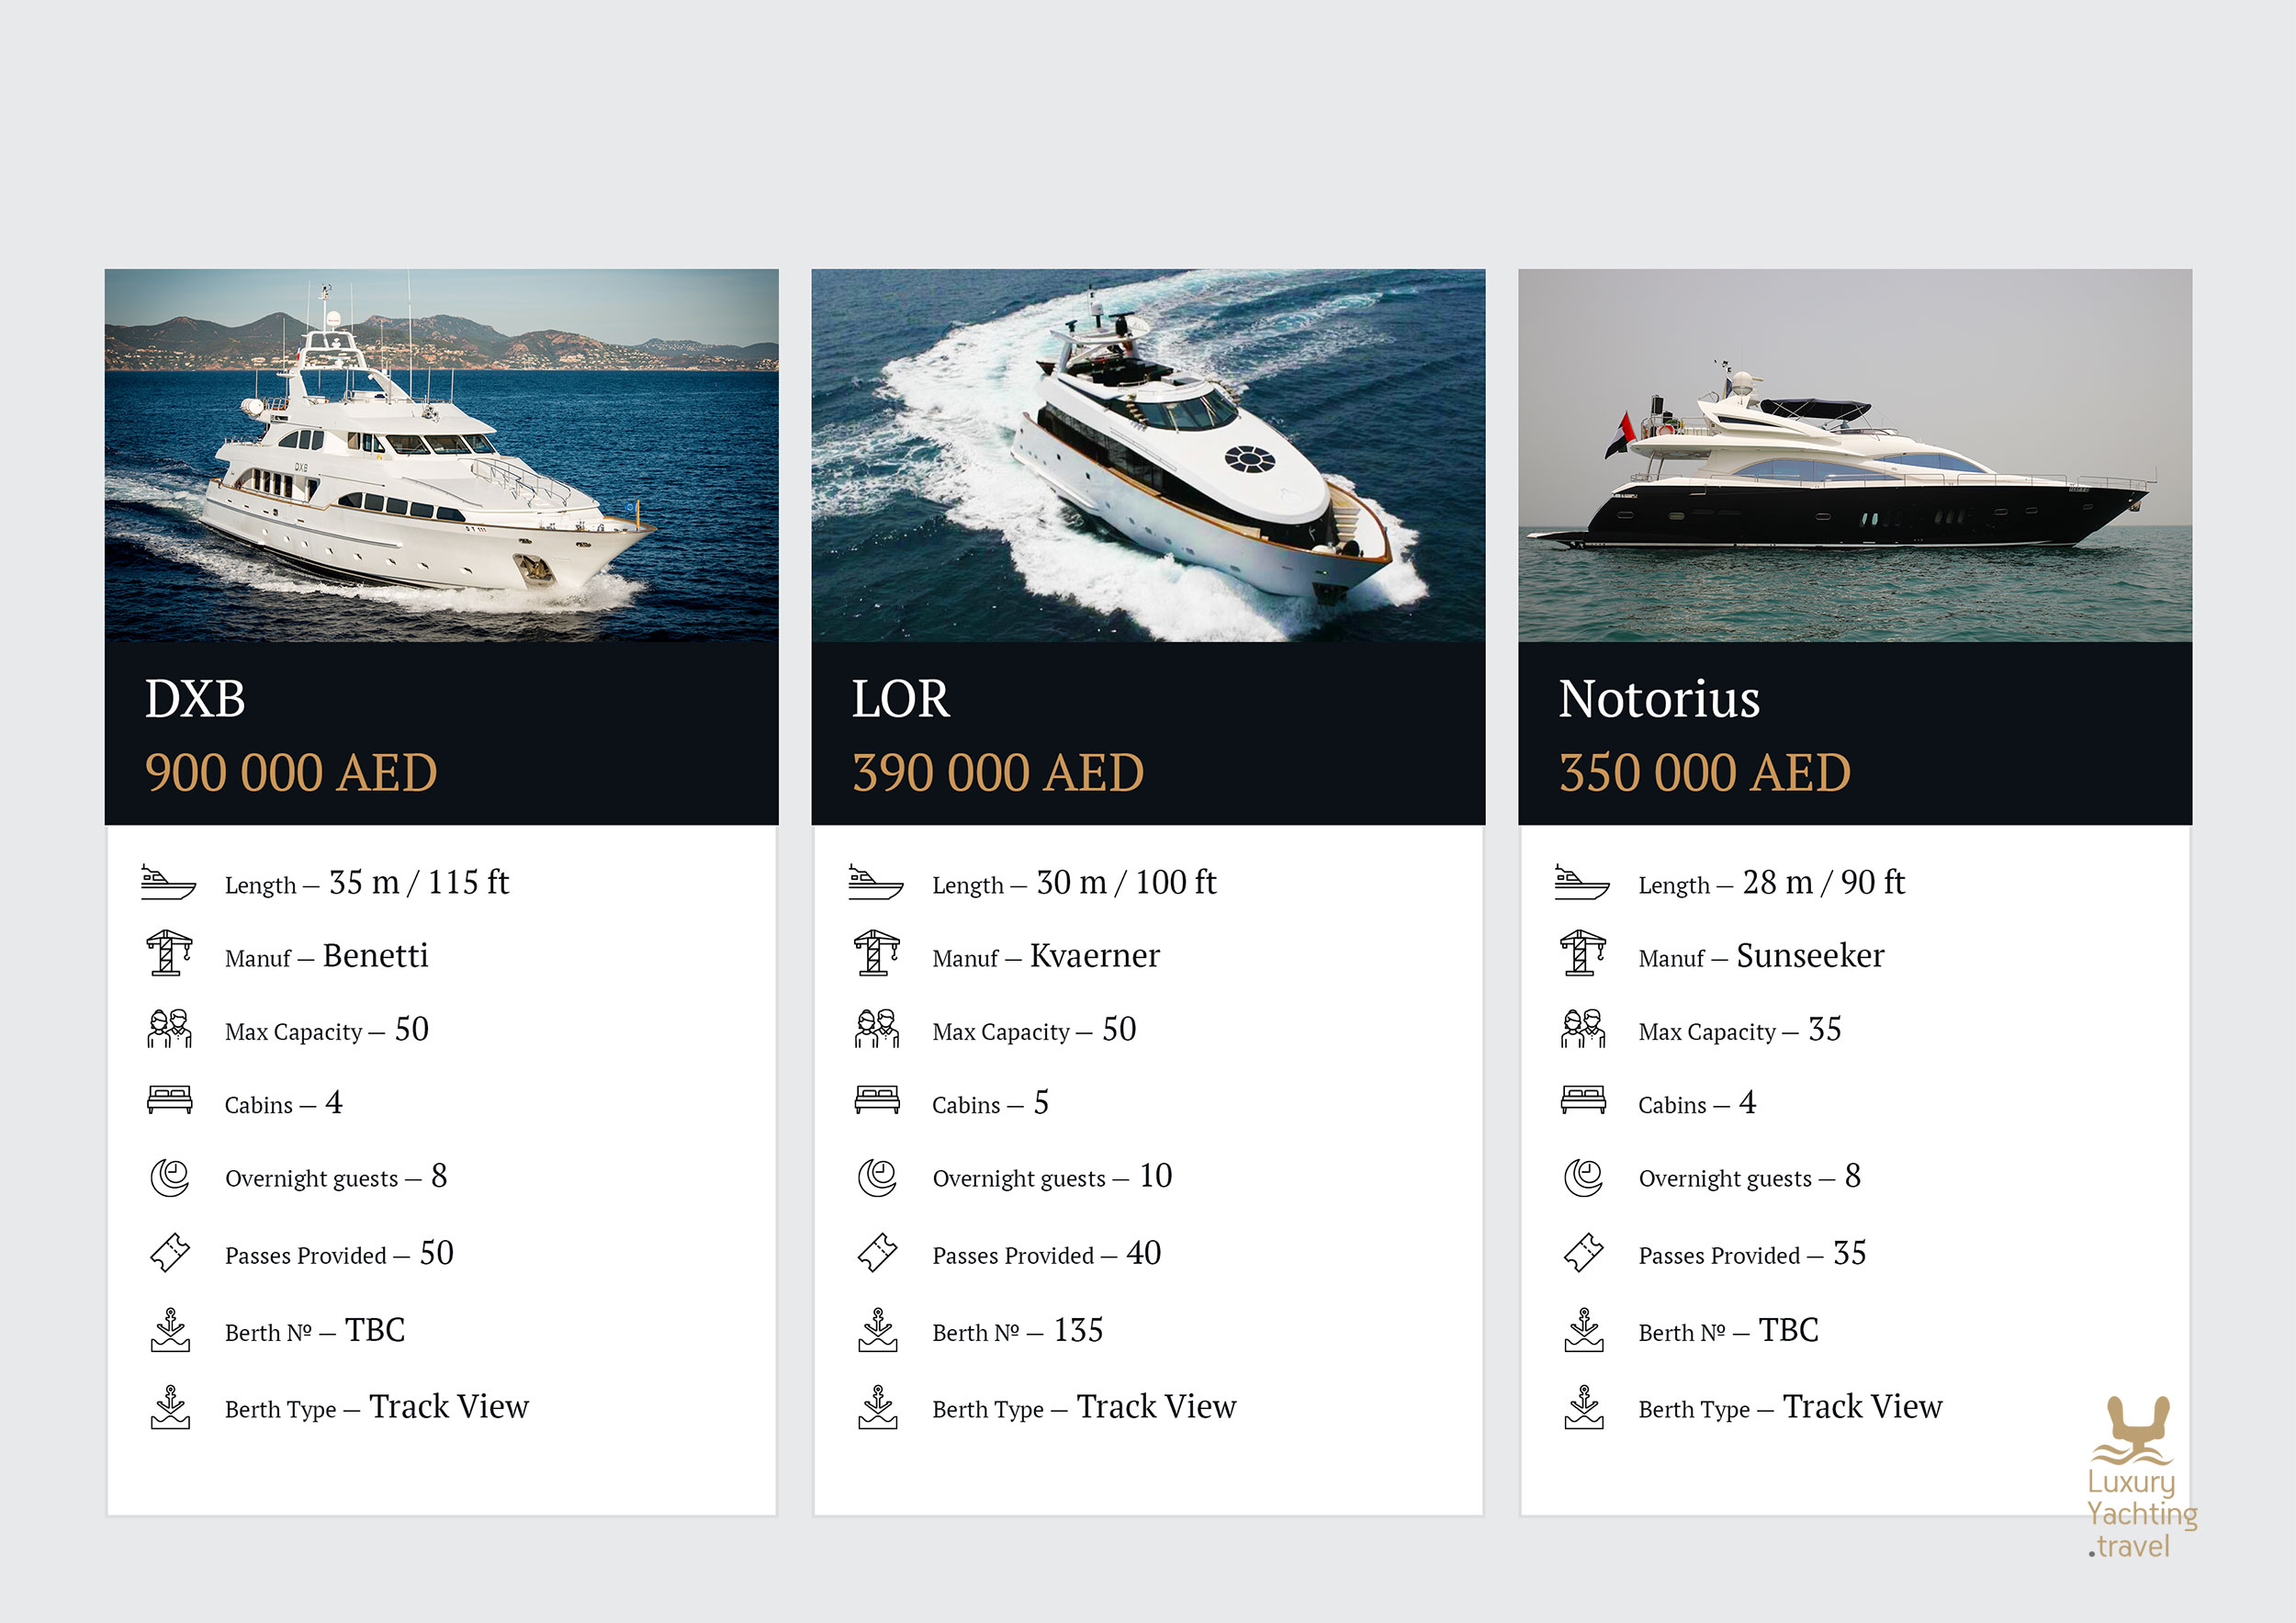 09_page_3YAchts_2500